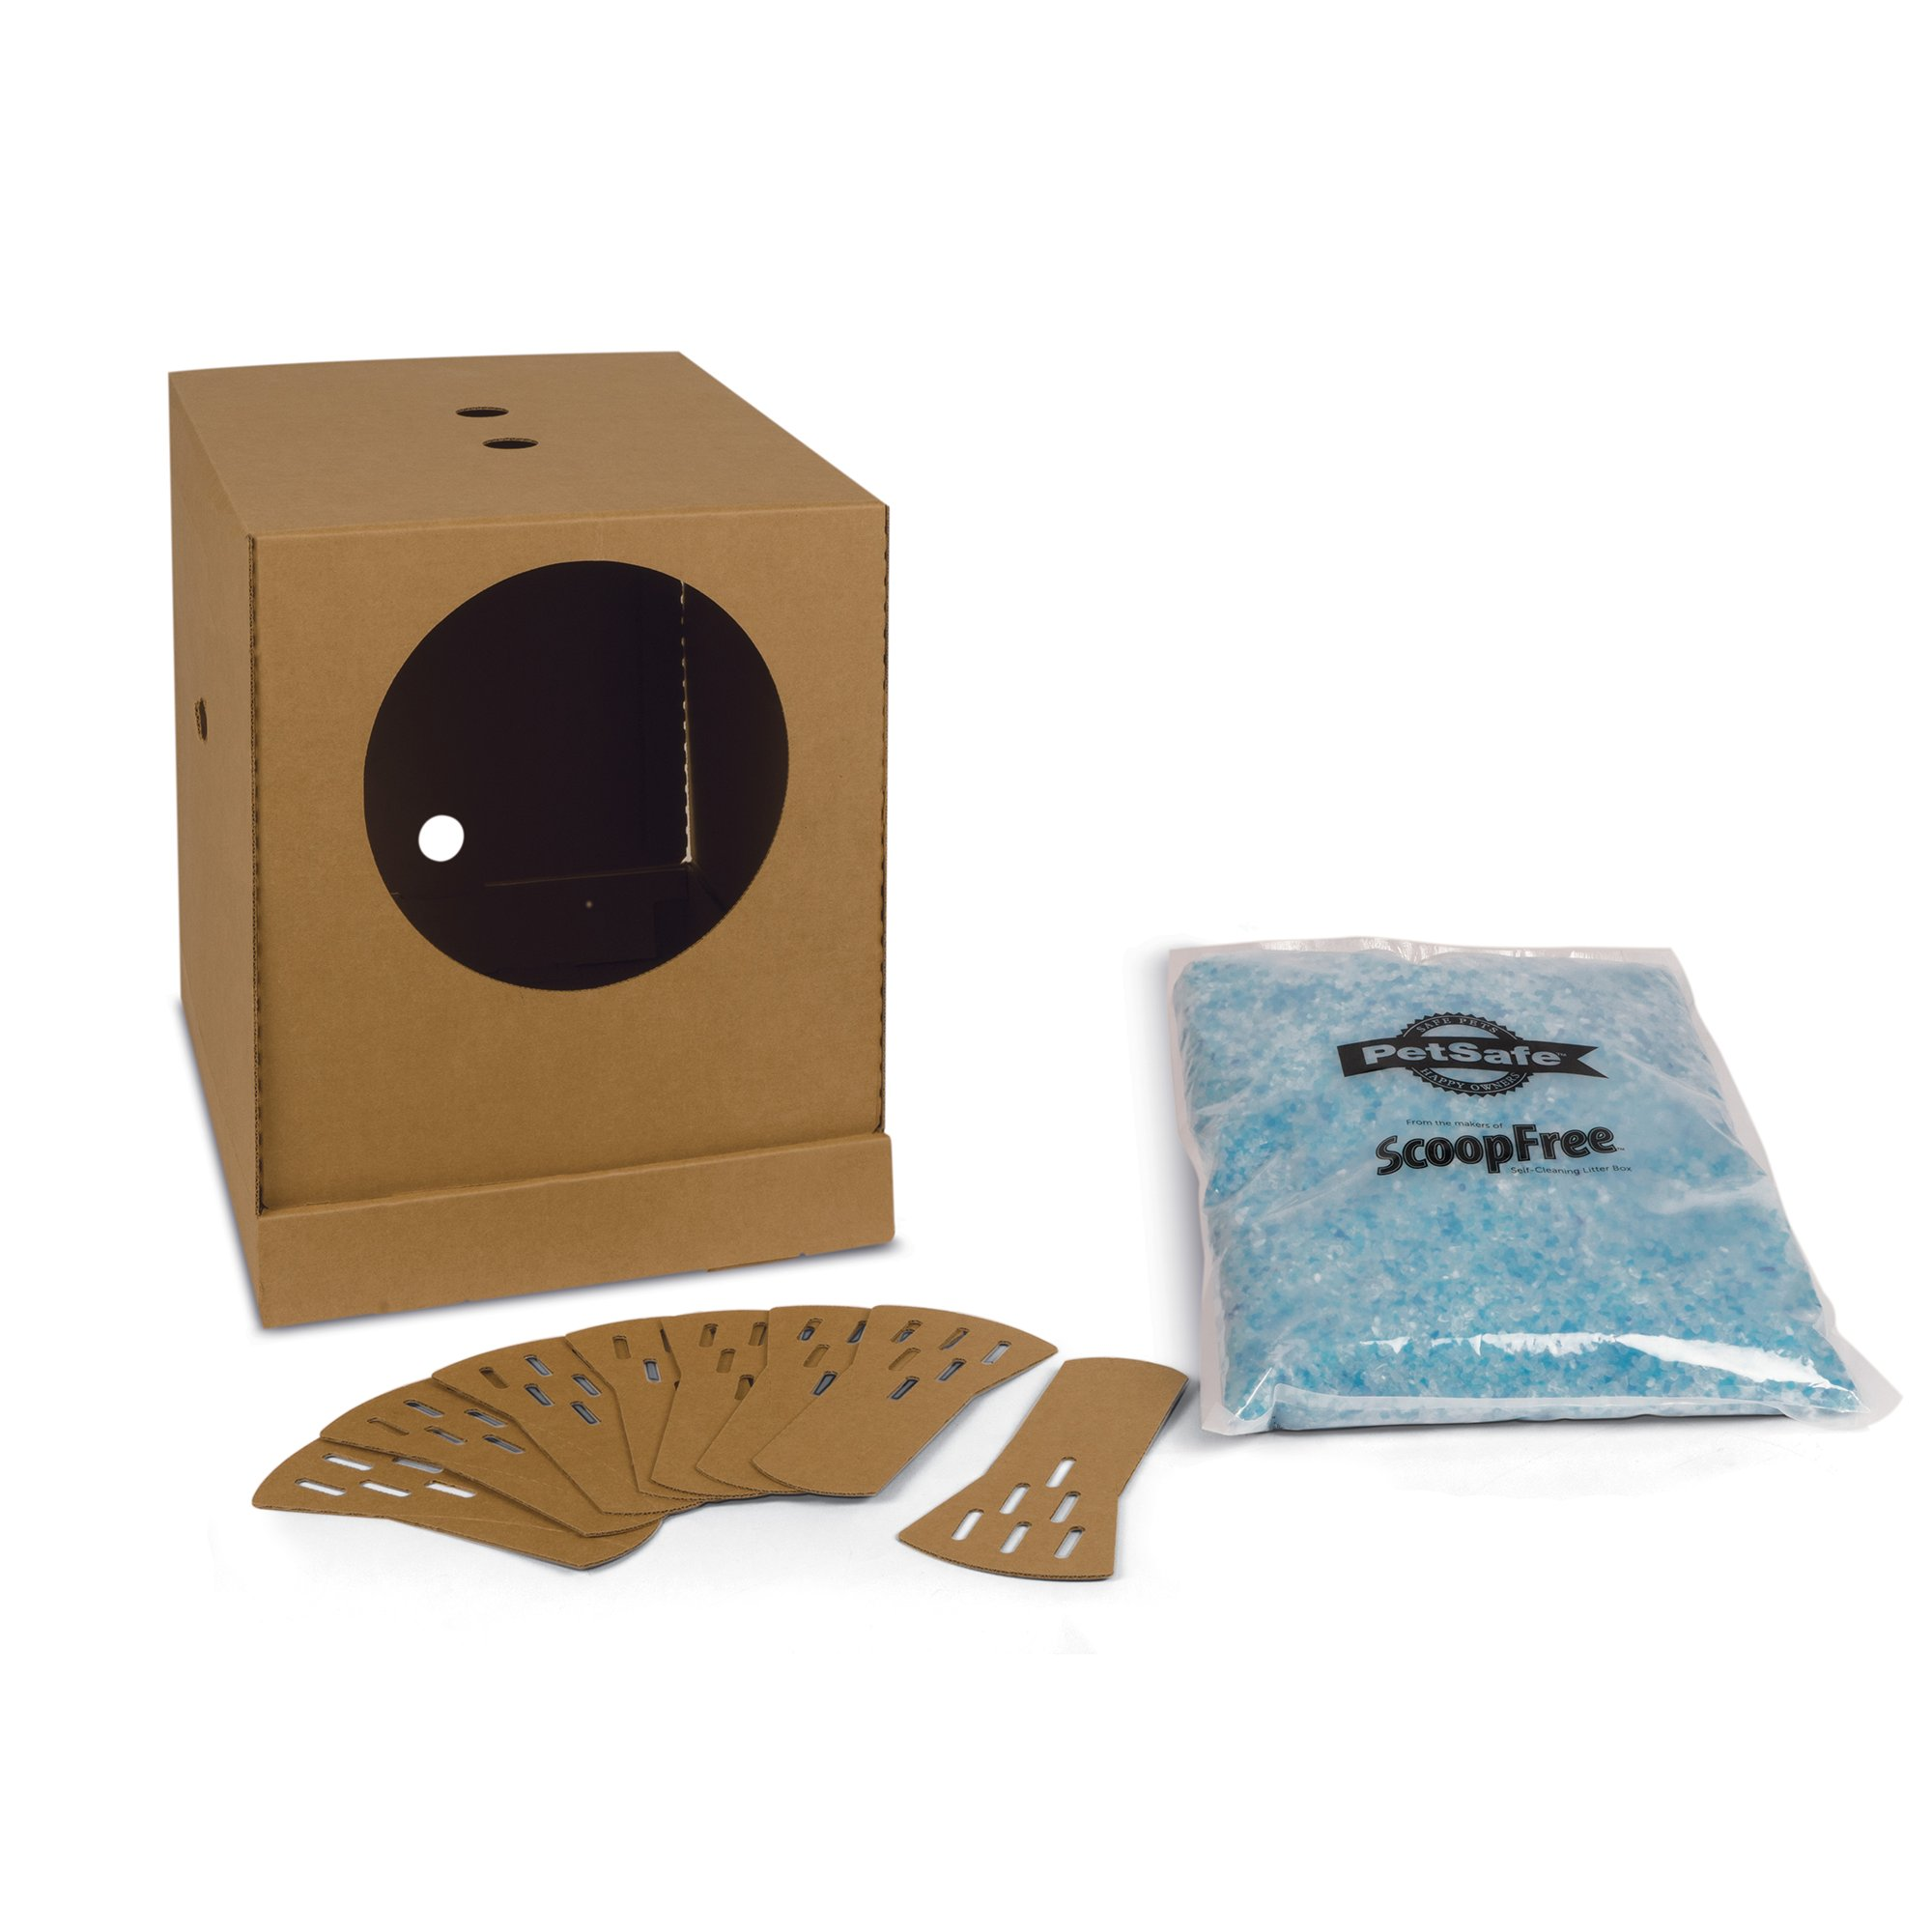 Scoopfree disposable cat litter box petco for Dog litter box petco